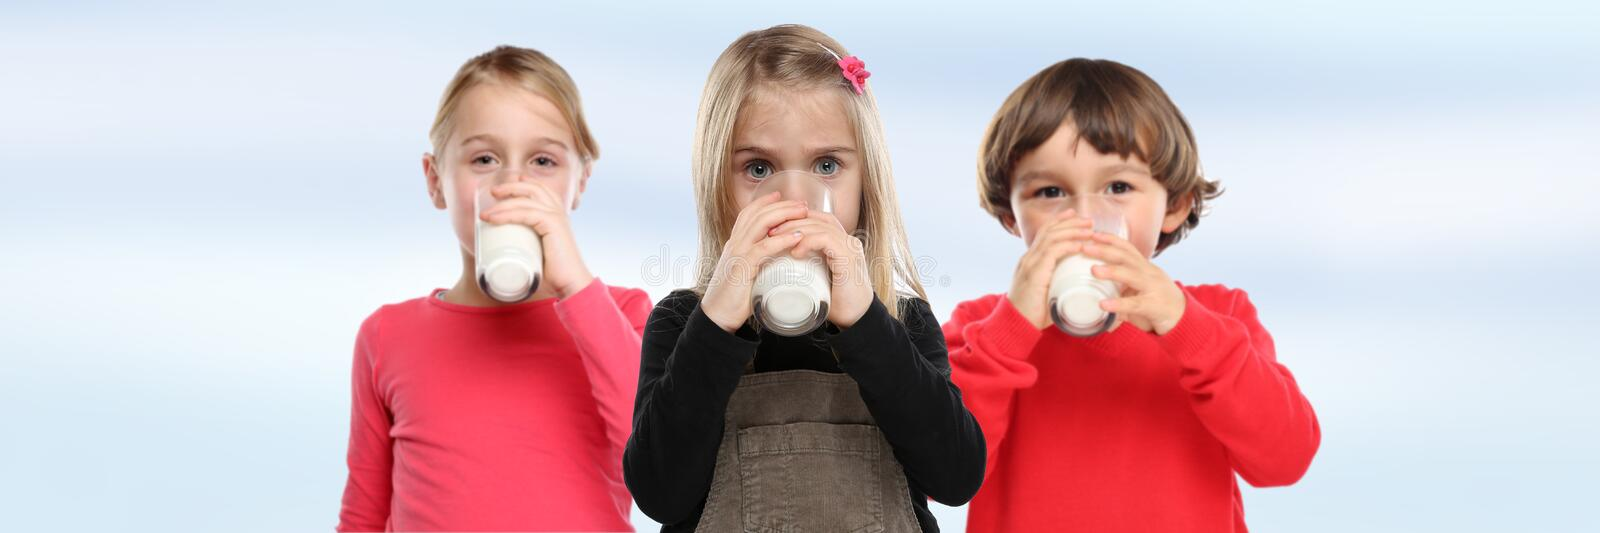 Children girl boy drinking milk kids glass banner copyspace heal. Children girl boy drinking milk kids glass banner copyspace copy space healthy eating royalty free stock photography